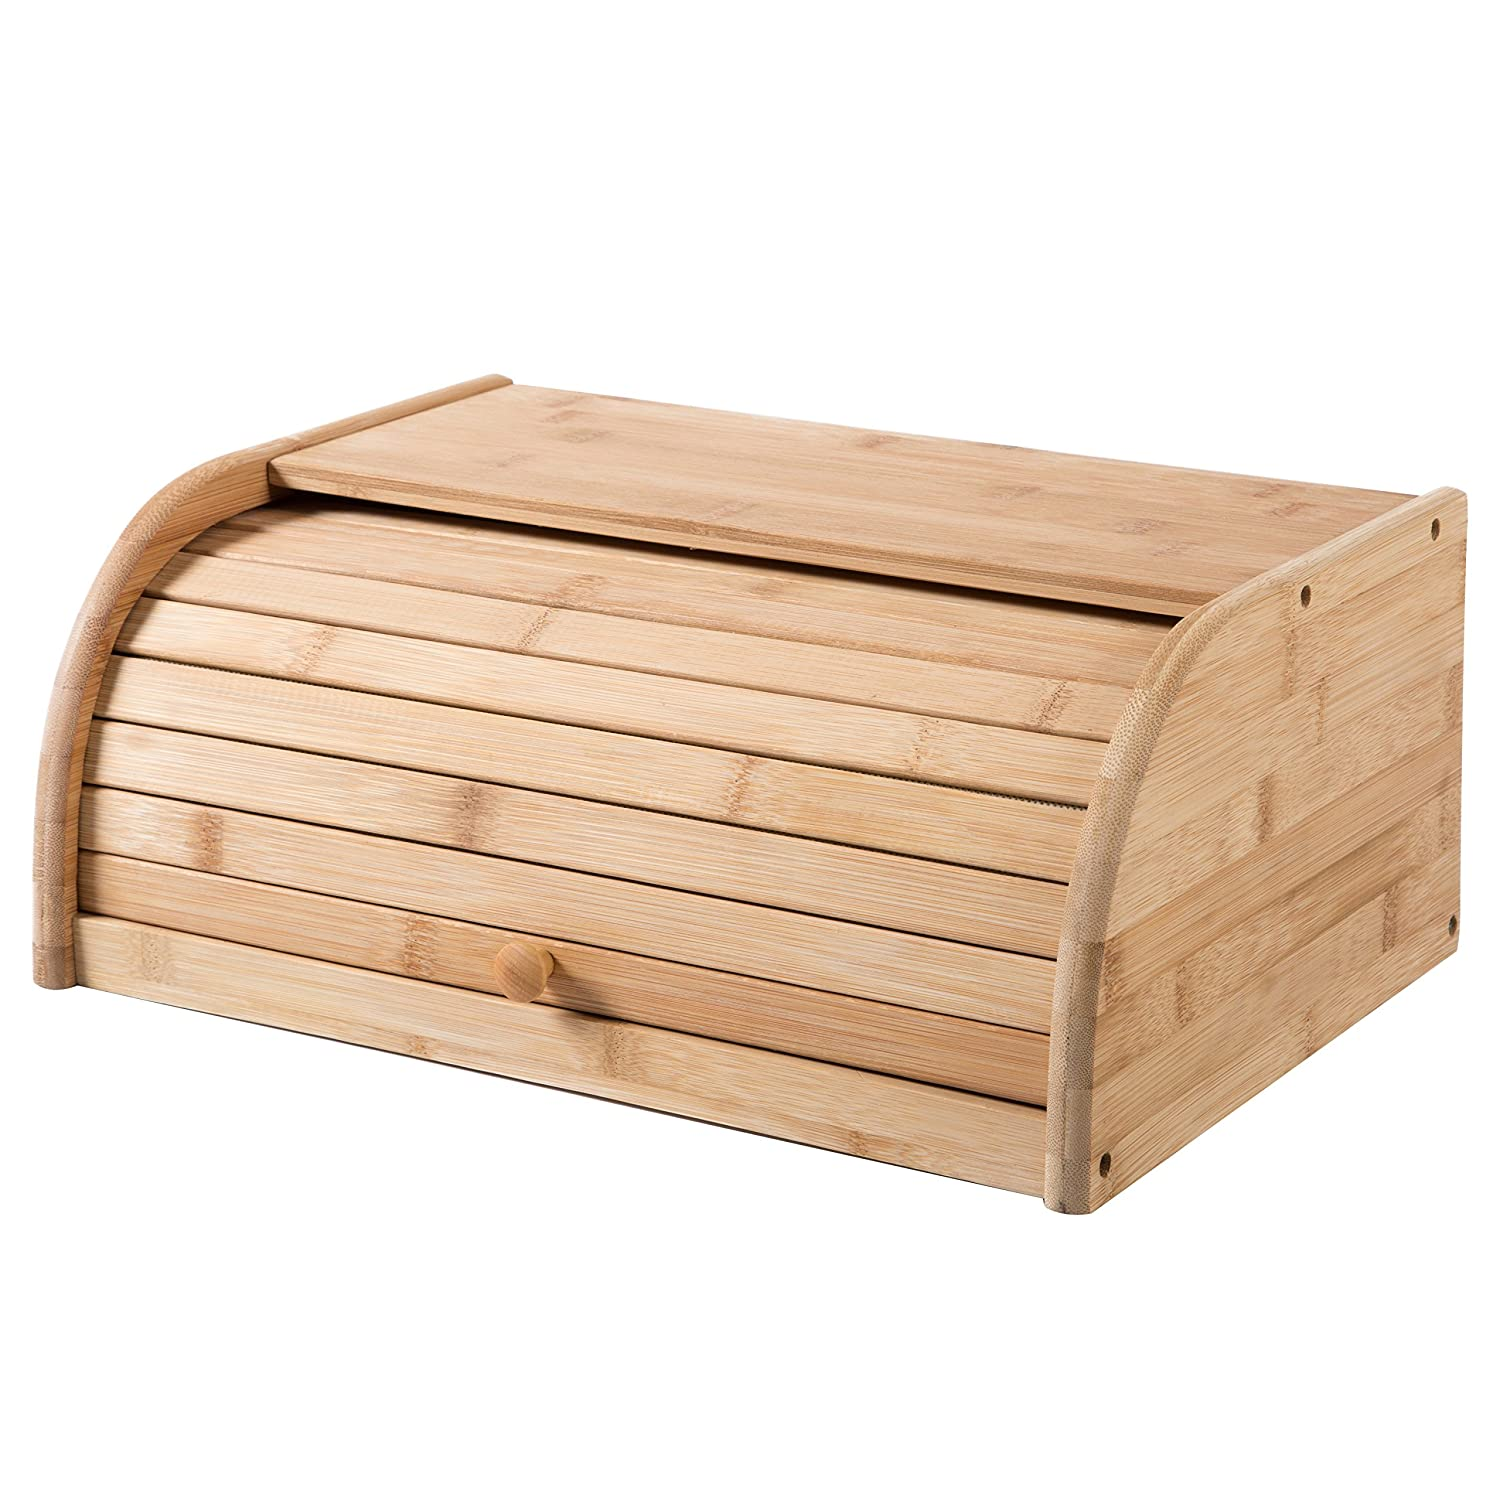 16 inch Kitchen Natural Wooden Bamboo Rolltop Bread Box Food Storage - MyGift